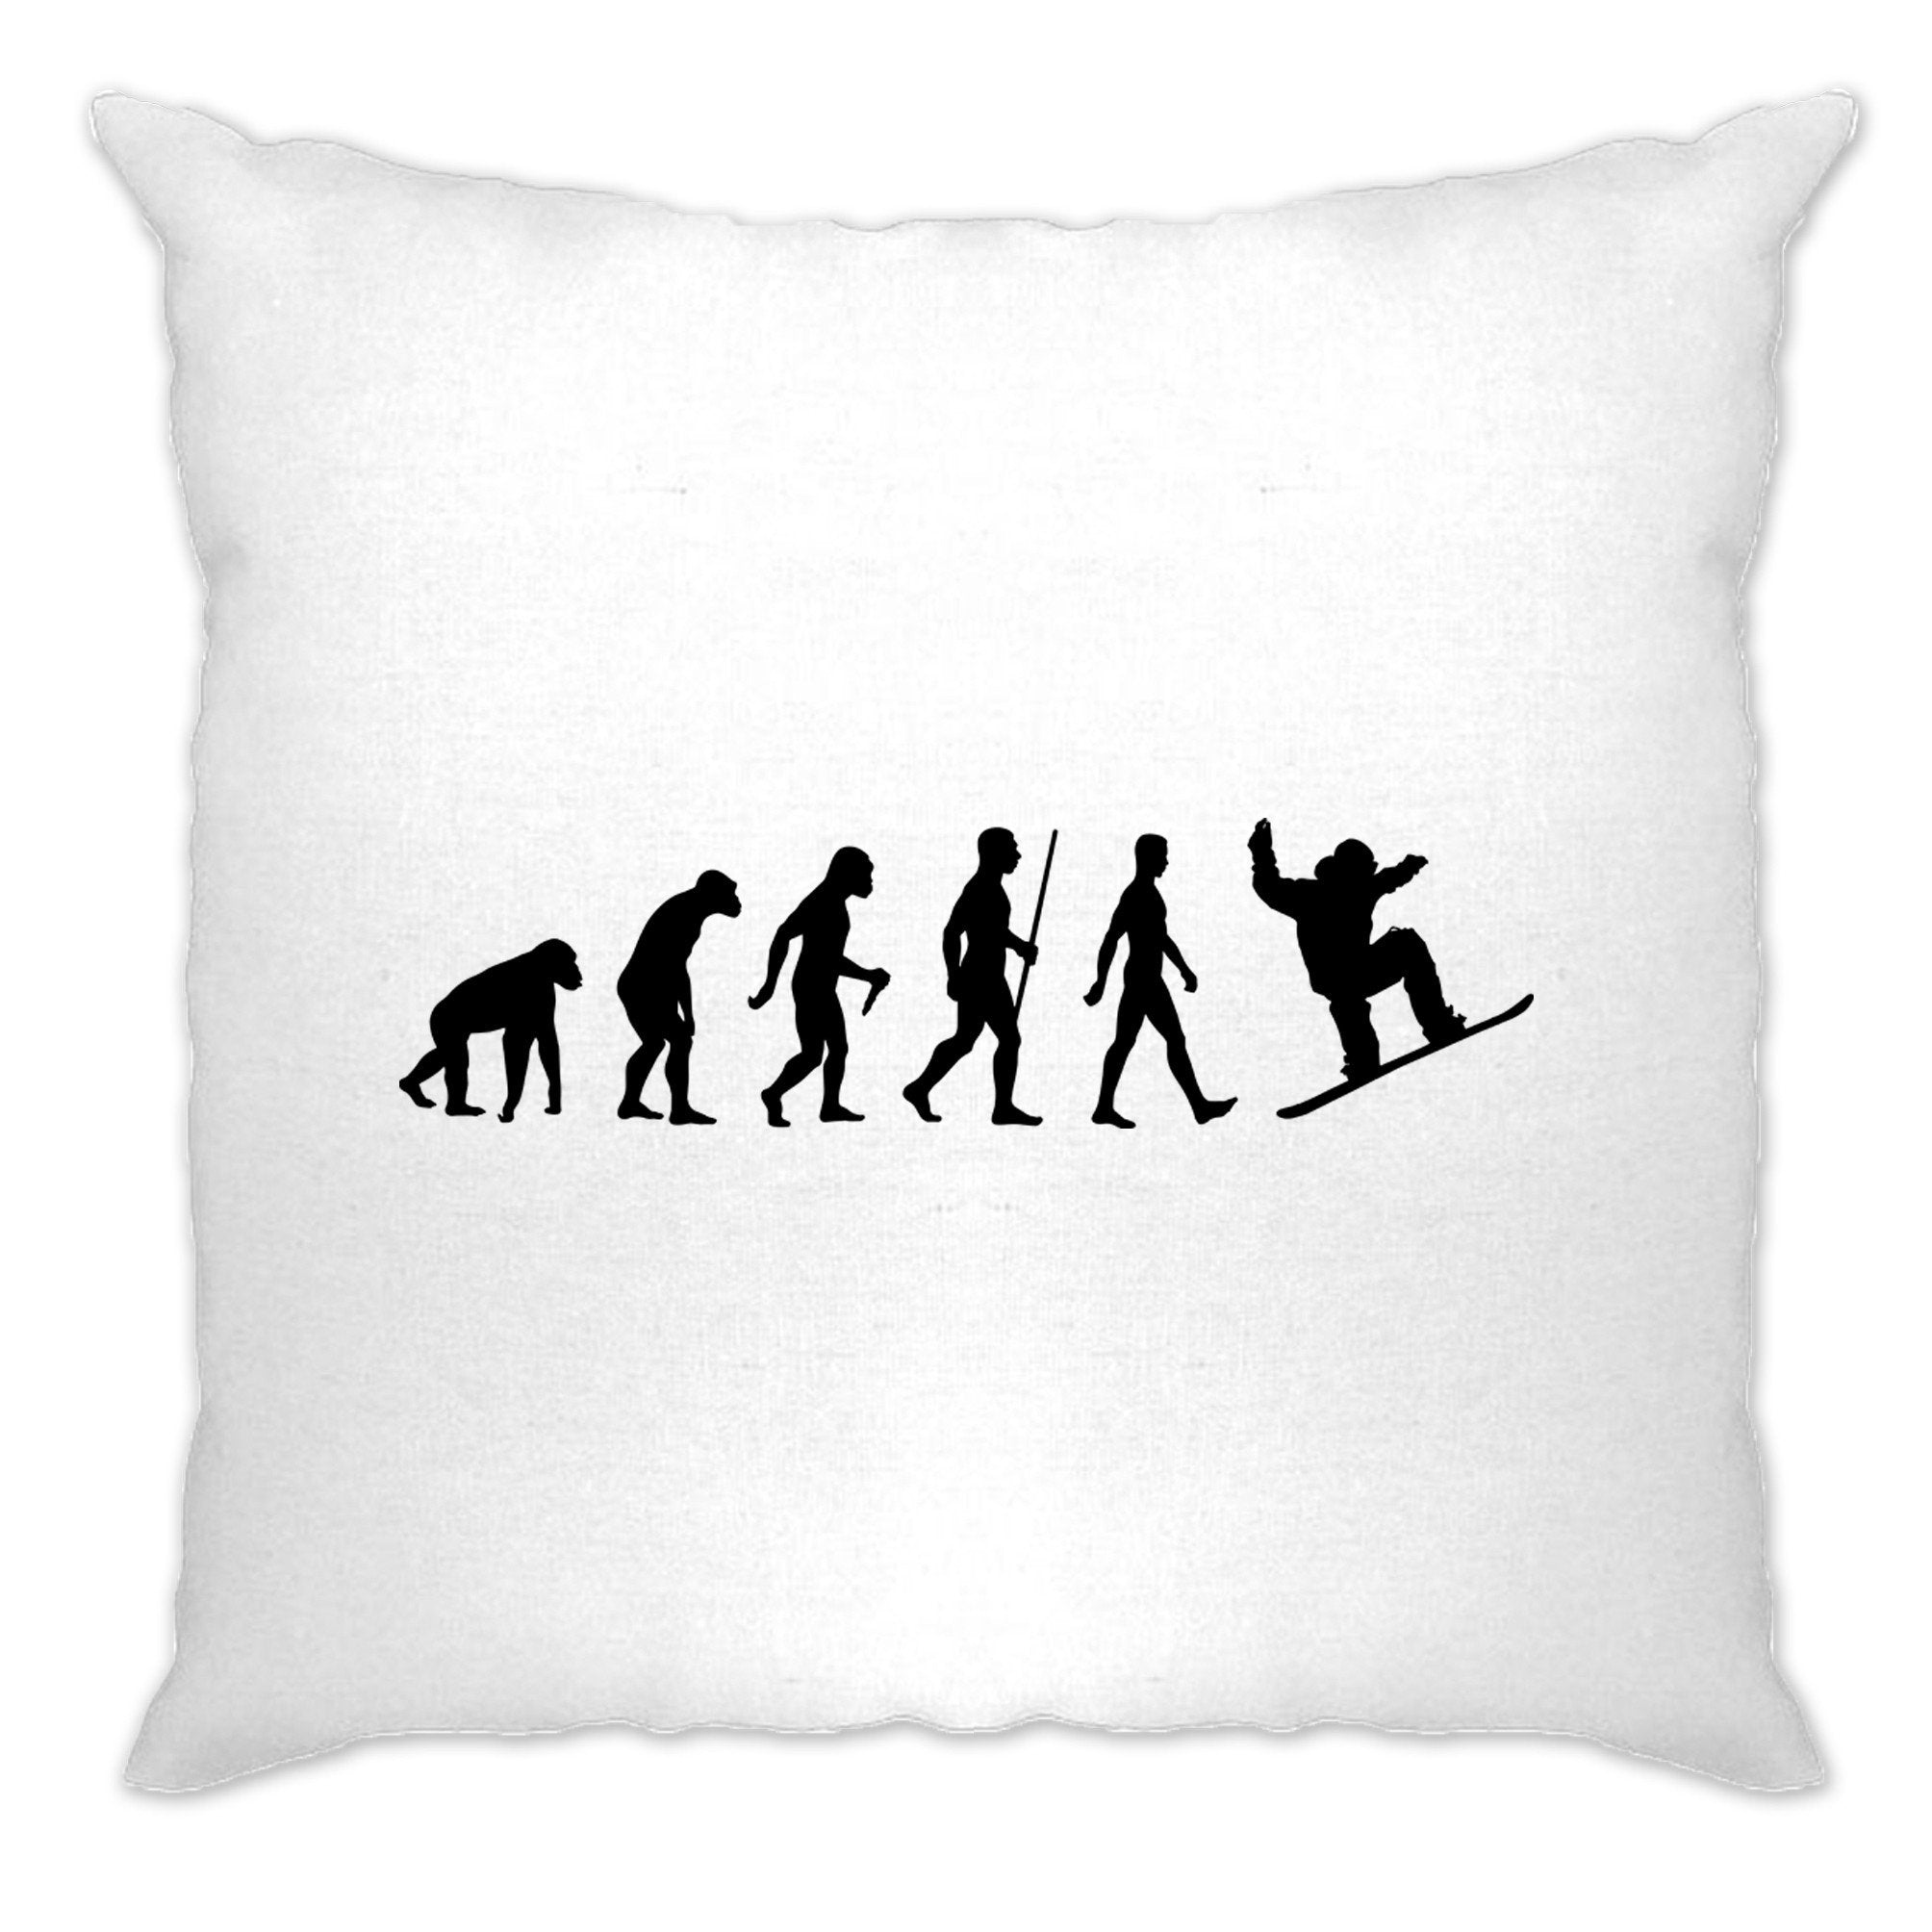 Sports Cushion Cover The Evolution Of A Snowboarder